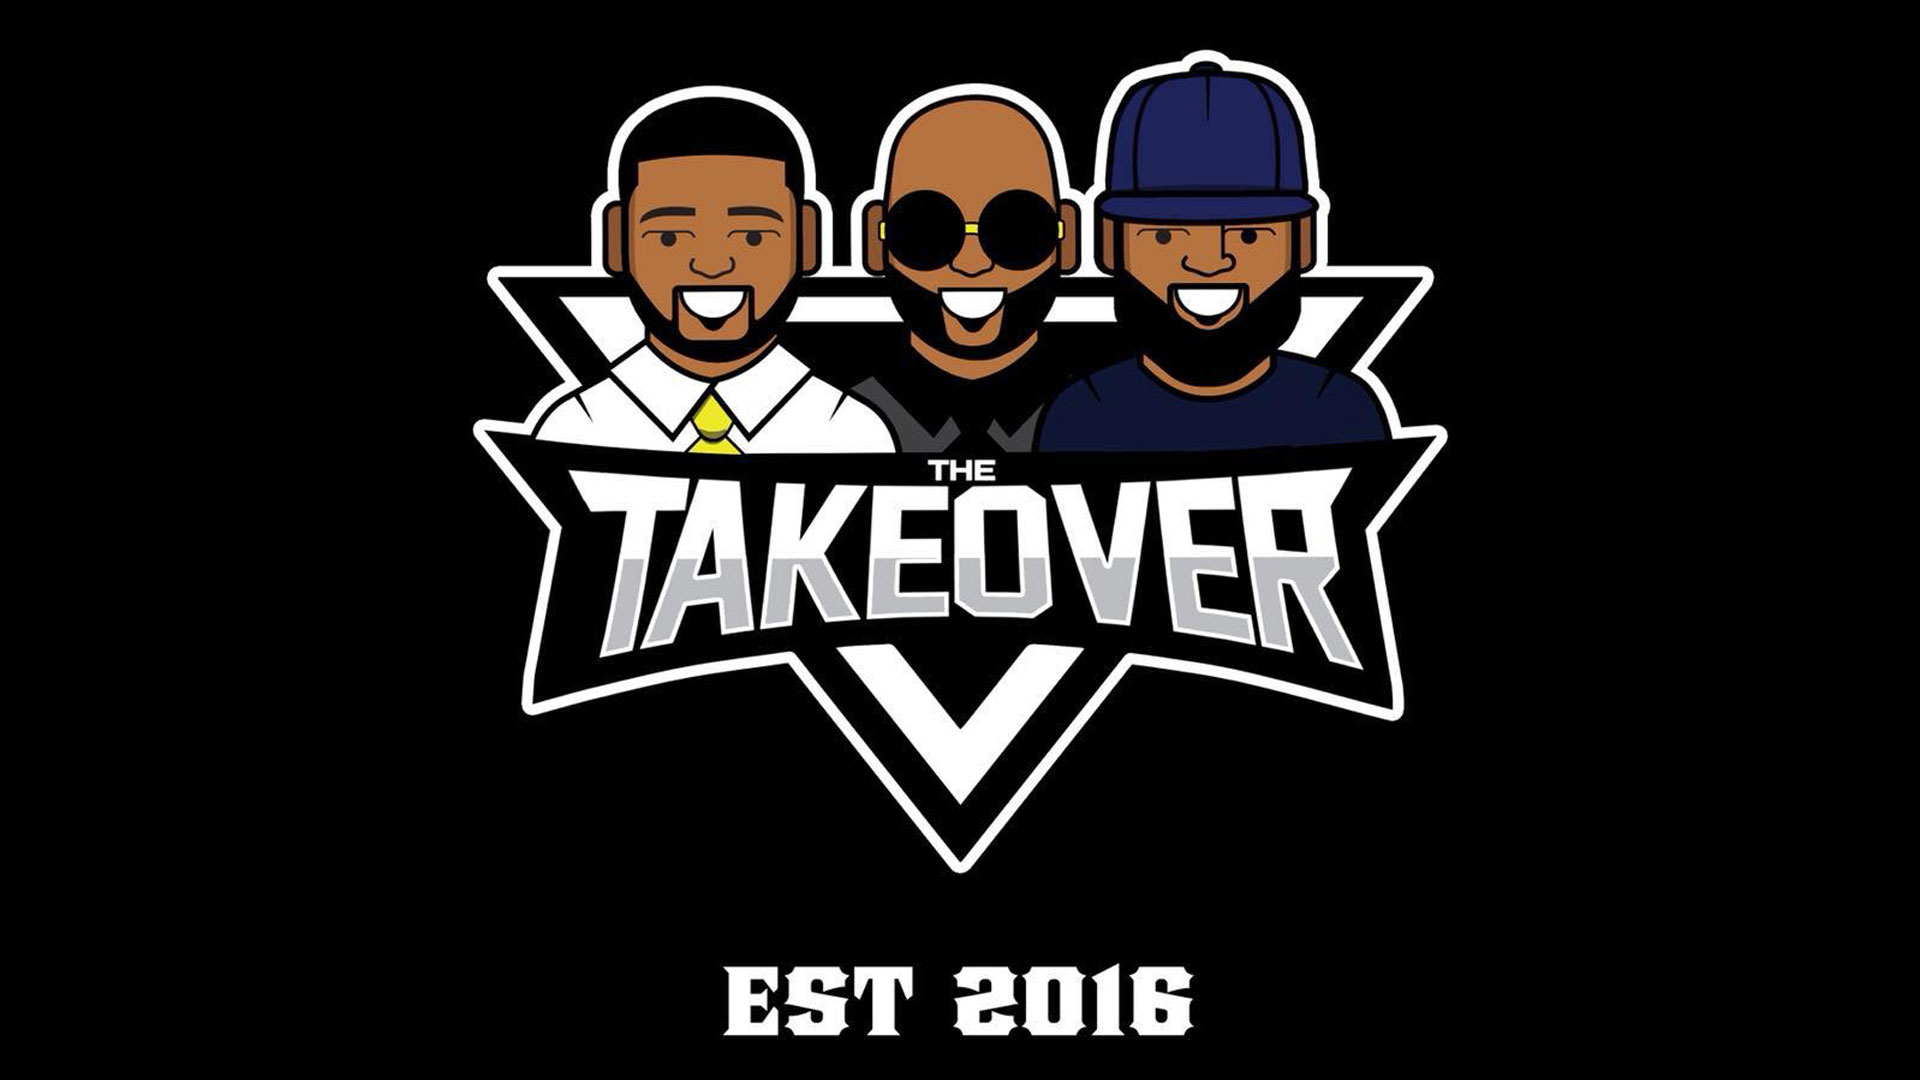 Takeover TV - Takeover TV focuses on highlighting local urban artist, actors, athletes and cultural figures. I sat down with them to discuss our short film, webseries, and future plans!